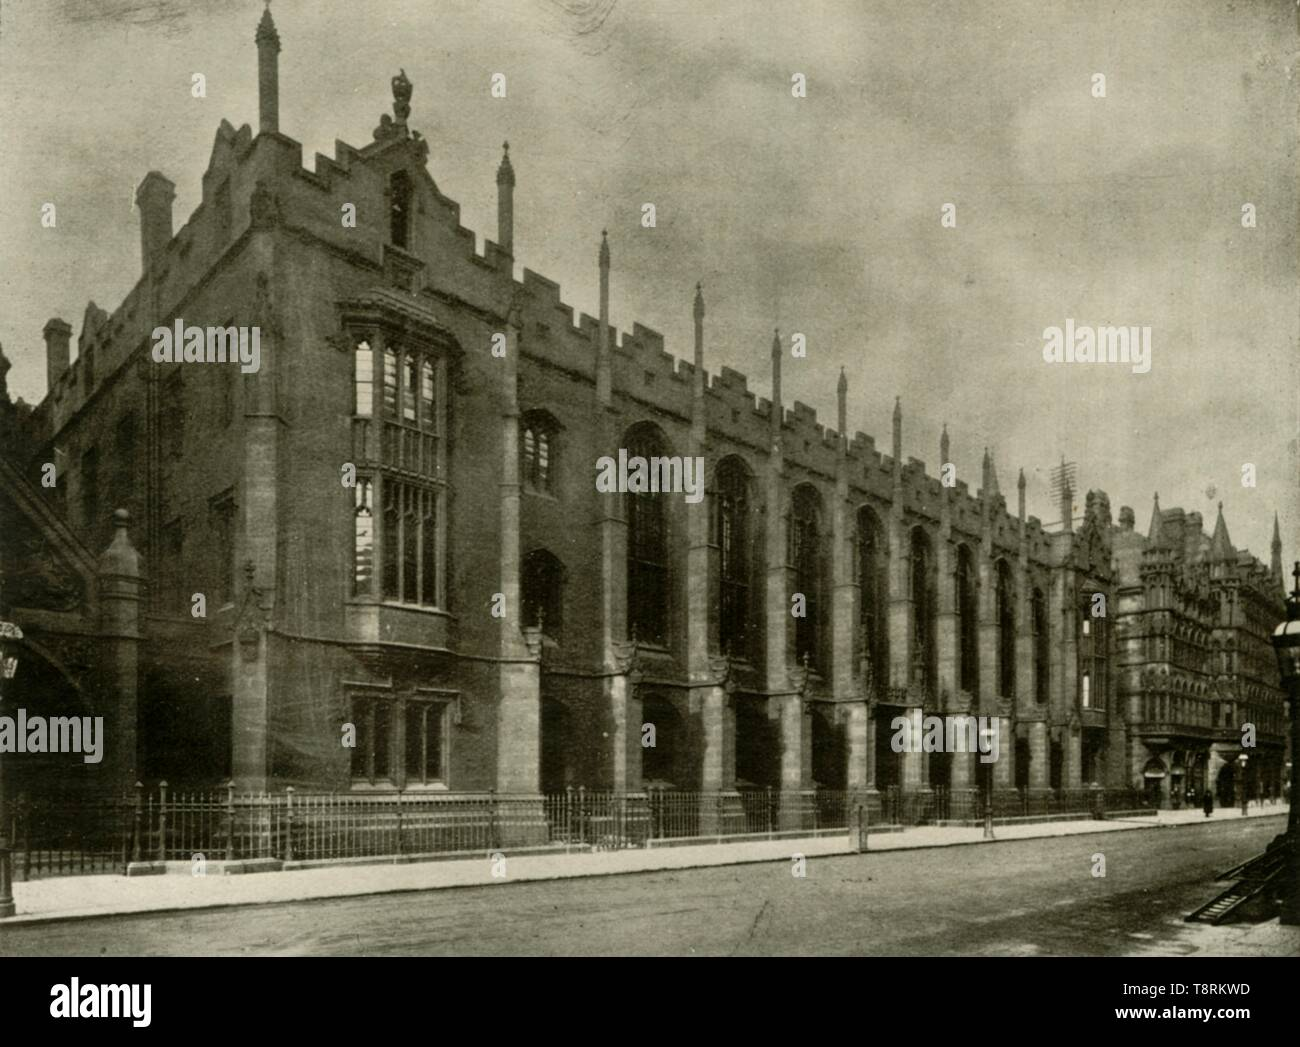 """King Edward's School, Birmingham, 1906. The building was designed in Neo-Gothic style by Sir Charles Barry, and completed in 1837. It was demolished in the 1930s. From """"The Burlington Magazine for Connoisseurs"""", Volume VIII, October 1905 - March 1906. [The Burlington Magazine Ltd, London, 1906] - Stock Image"""